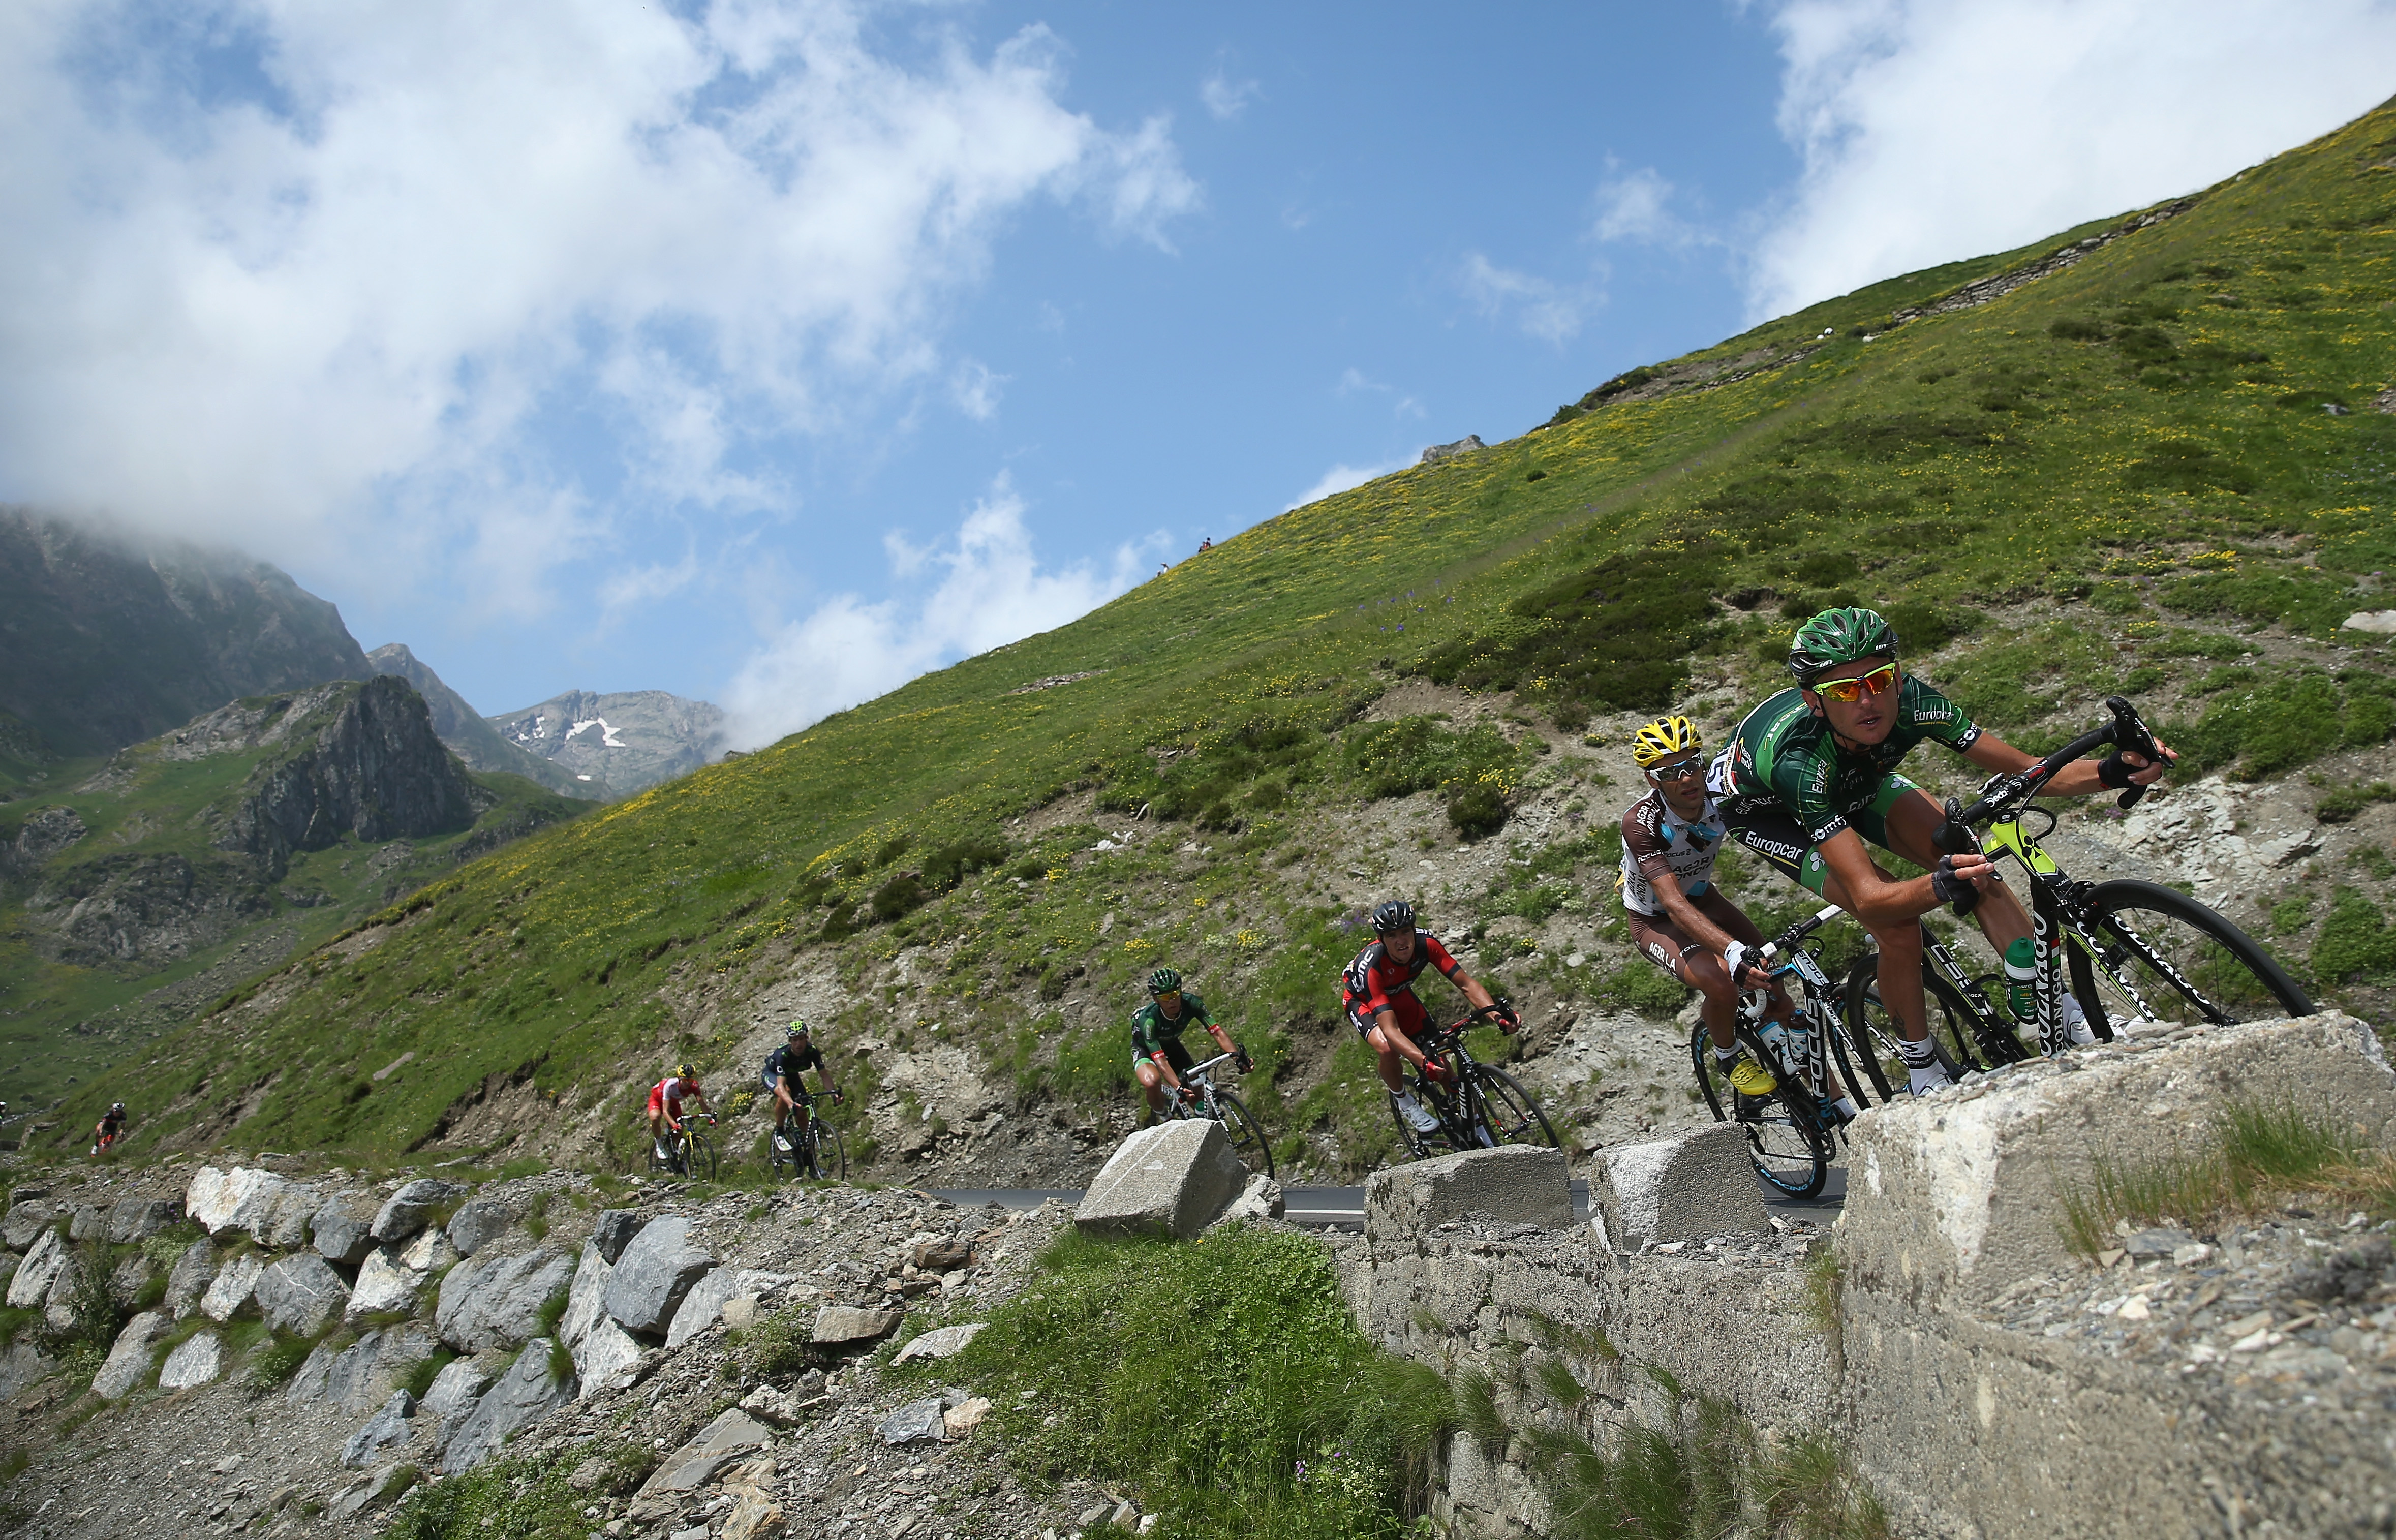 Perrig Quemeneur of France and Team Europcar leads riders on the descent of the Col du Tourmalet during the eighteenth stage.